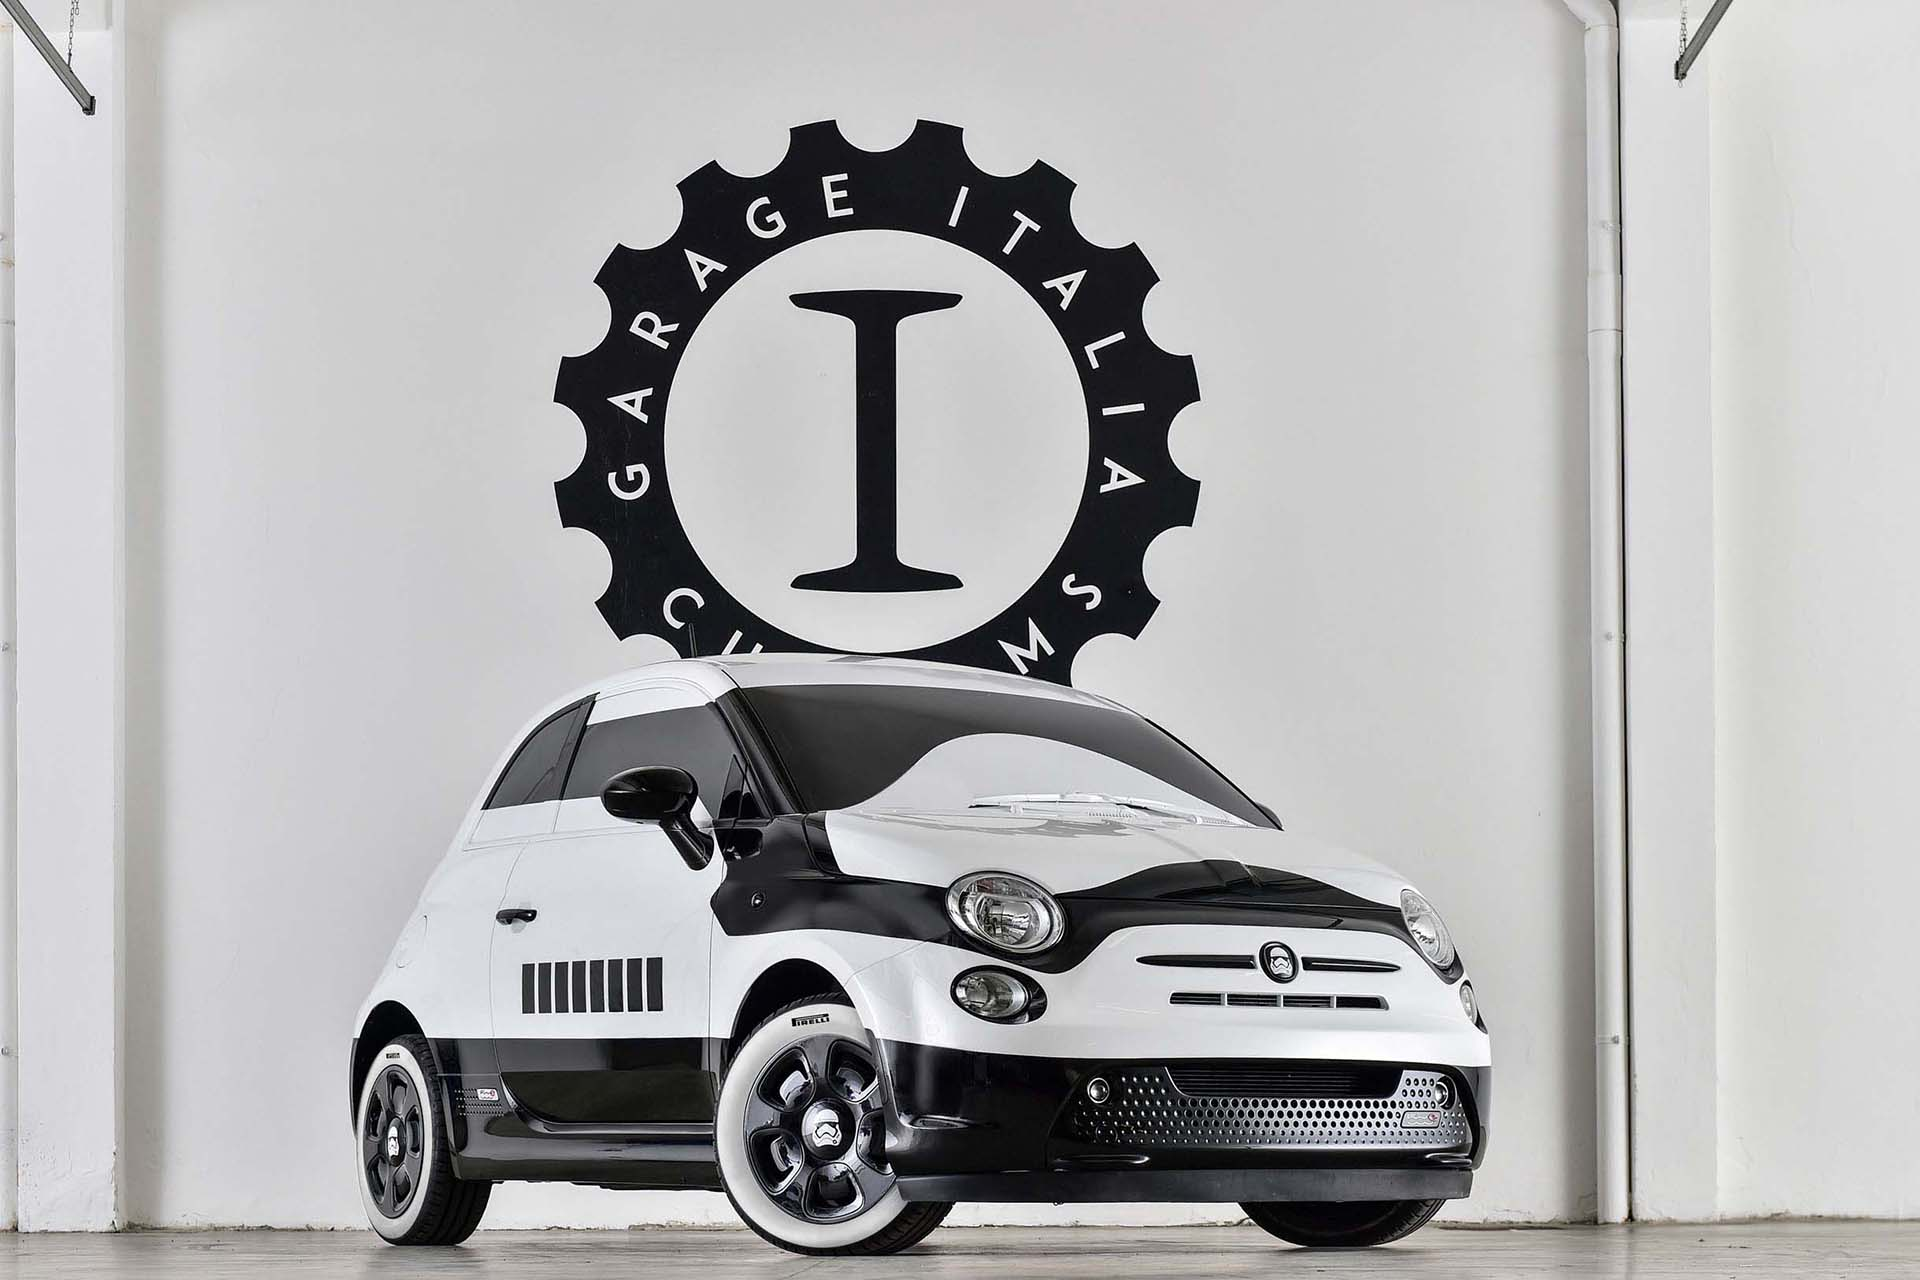 Garage Italia's got a little bit more budget than most of the fan cars on this list, which is why their Stormtrooper-inspired Fiat 500e offers a level of fit and finish seldom seen in the world of Star Wars tributes. Similar in theme to the Stormtrooper Dodge Chargers that took part in an Uber promo earlier in 2015, the electric Fiat 500e boasts a stylized helmet paint job with black and white highlights intended to evoke Stormtrooper armor both inside and out.